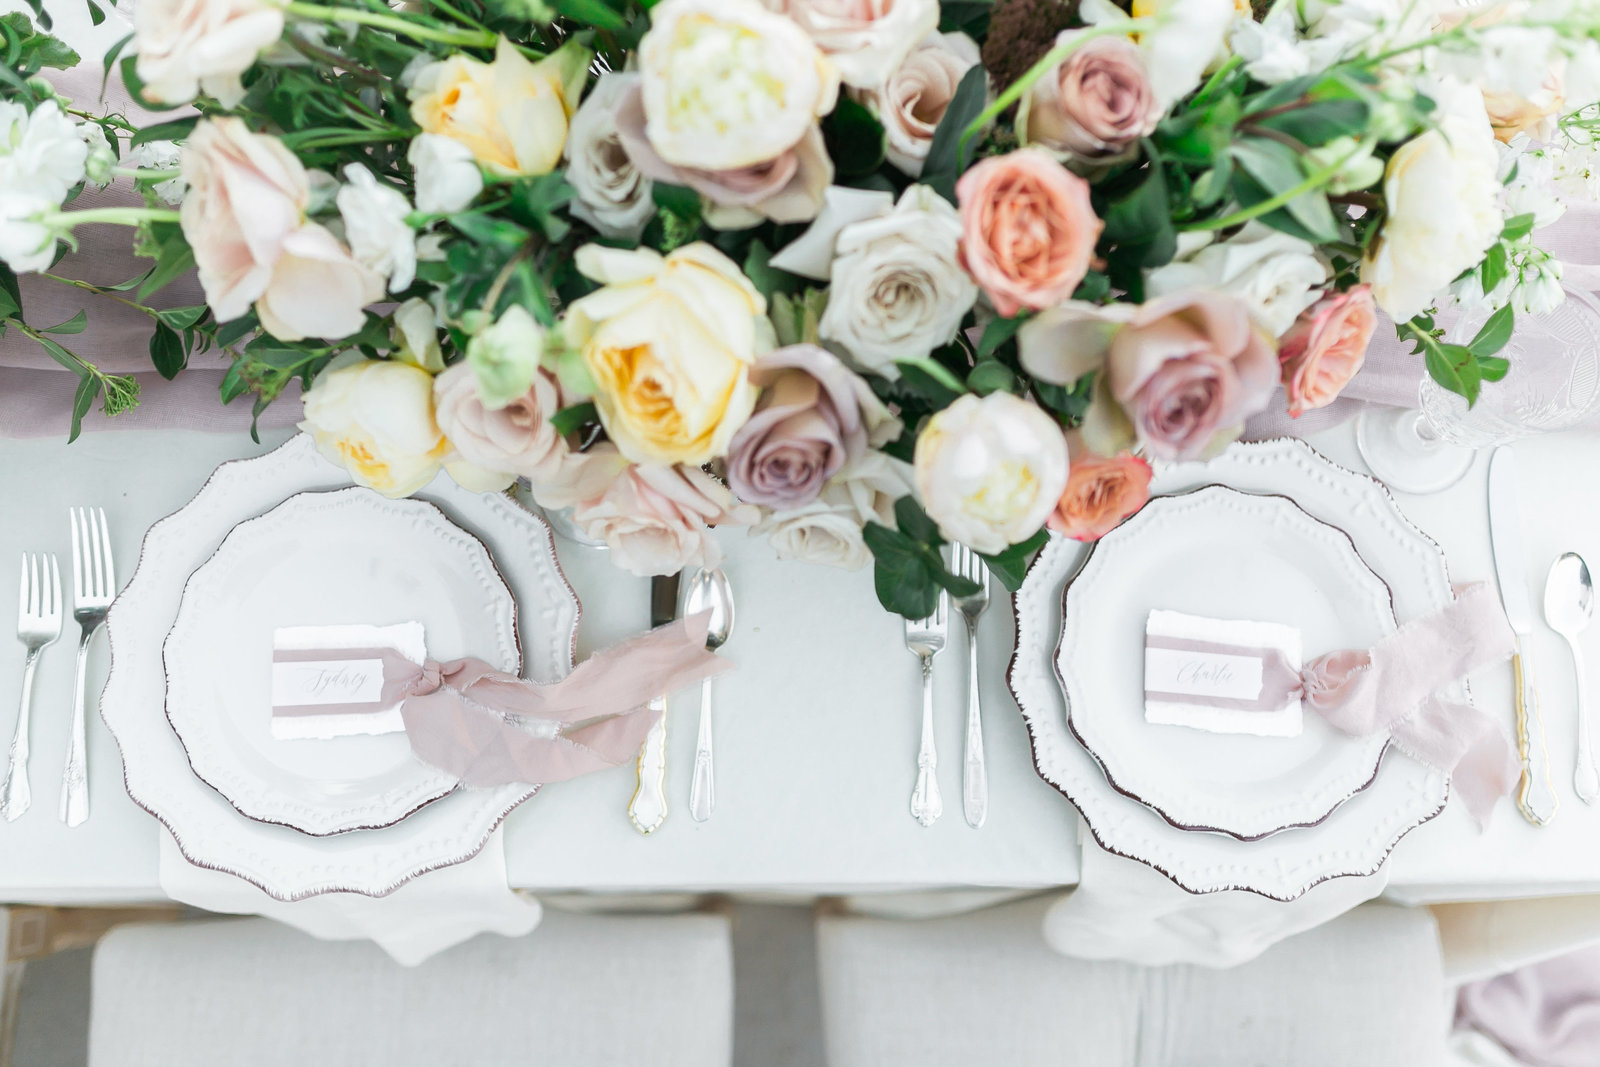 a photo of a tablescape with rustic plates, ribbon placecards, and a centerpiece filled with yellow, mauve, blush, and apricot colored roses